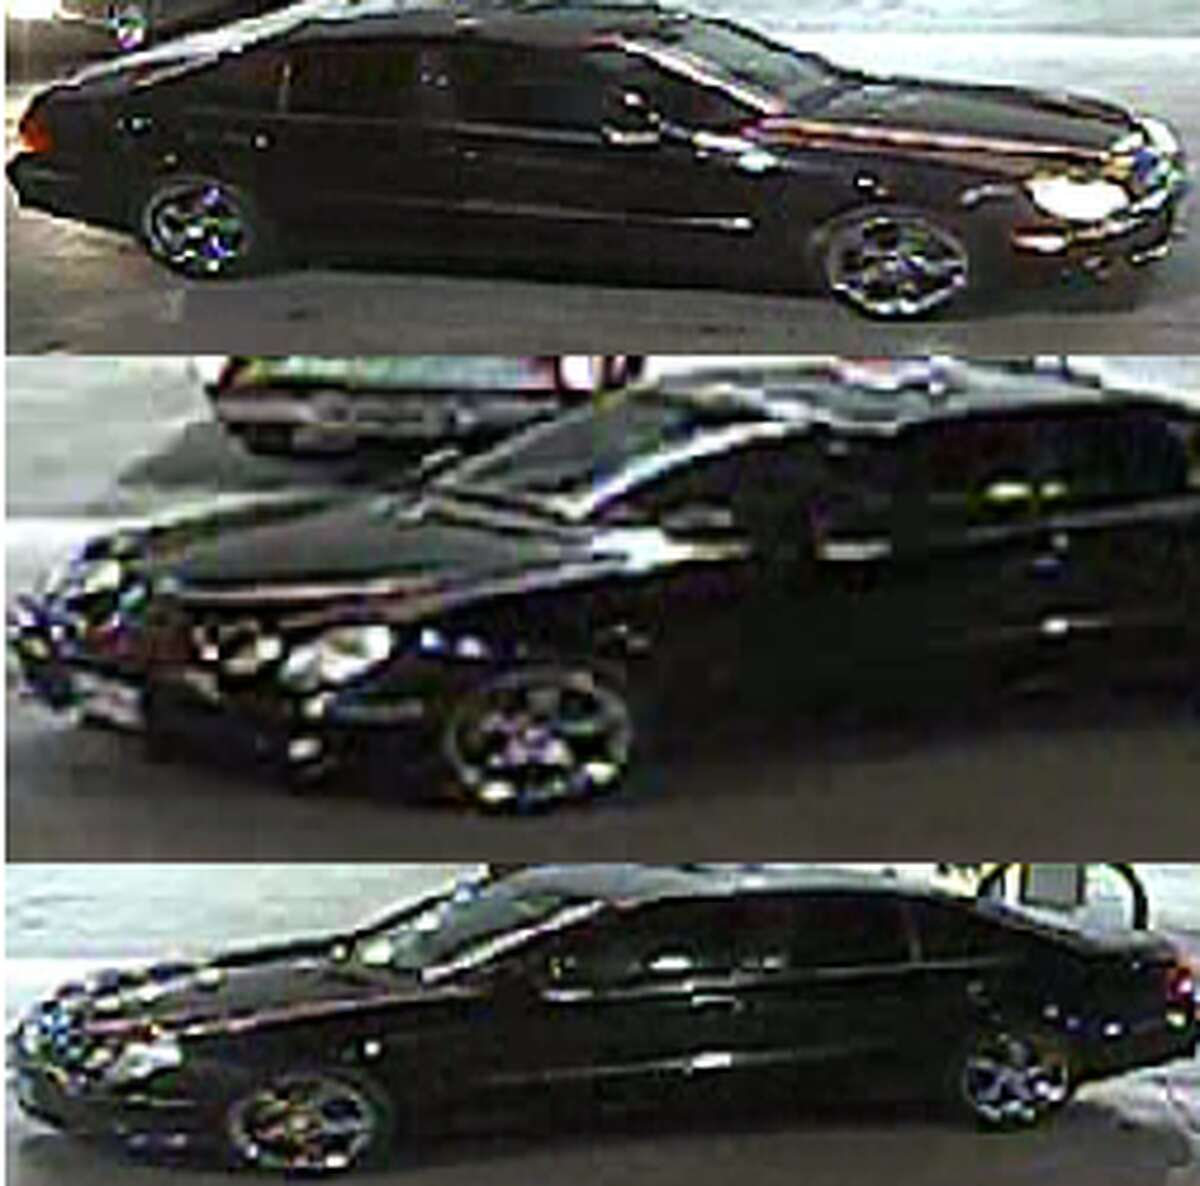 Police are searching for the driver of a dark colored car who they believe has information pertinent to a sexual assault investigation from December.